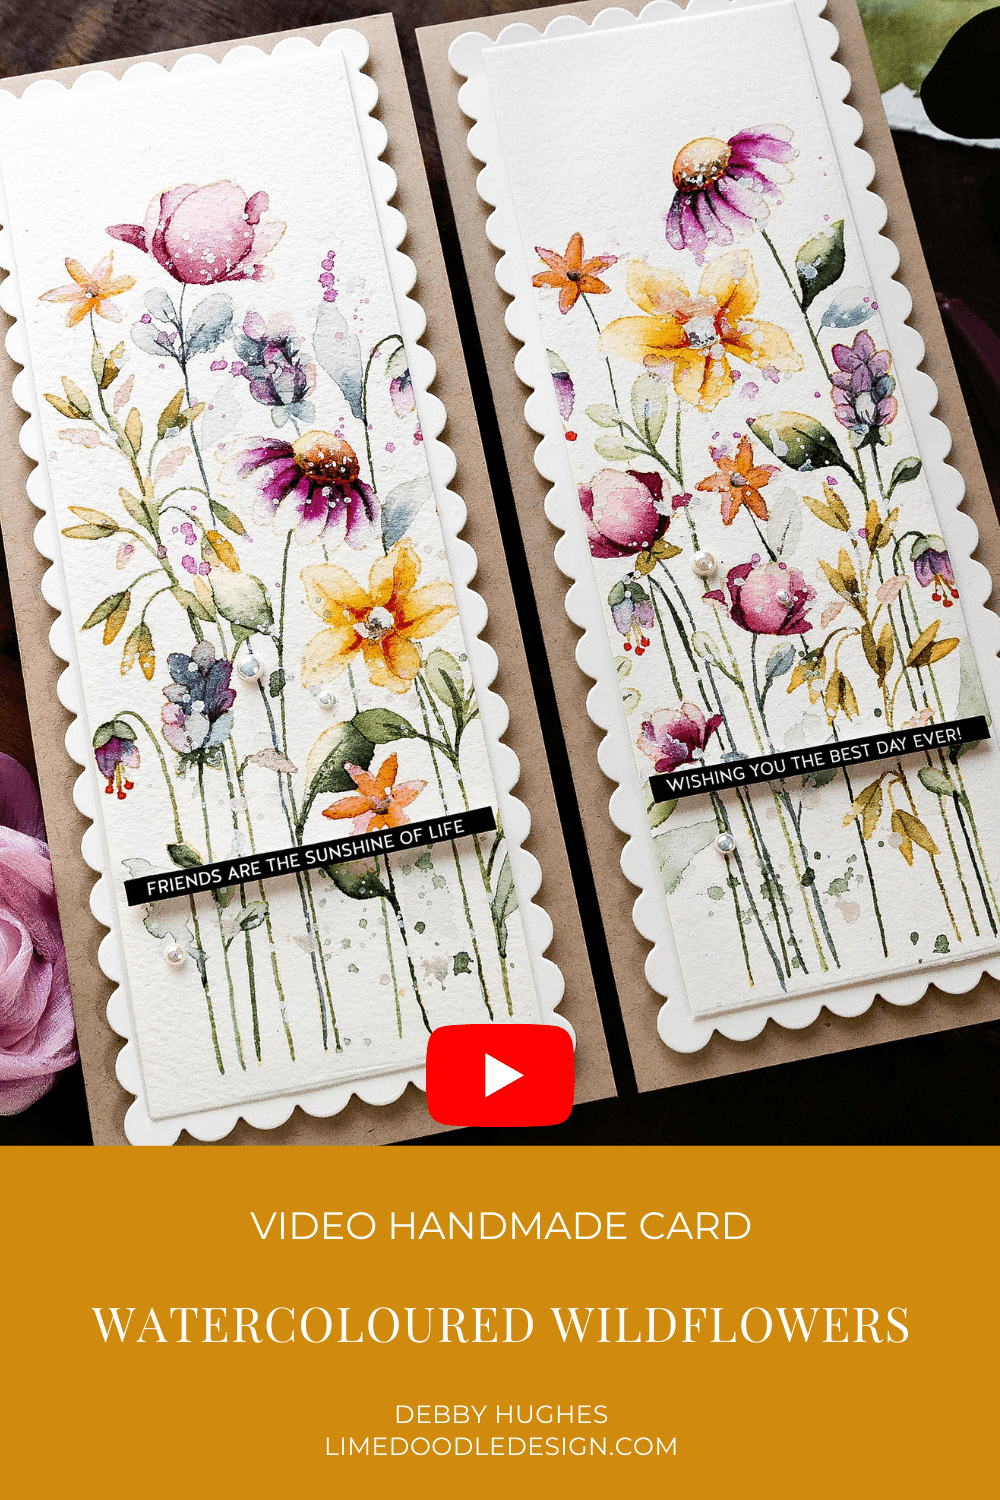 Video tutorial creating two-for-one watercoloured wildflower handmade cards duo! Design by Debby Hughes using supplies from Simon Says Stamp #handmadecards #cardmaking #cardmakingideas #cardmakingtechniques  #cardmakingtutorials #handmadecardideas #simonsaysstamp